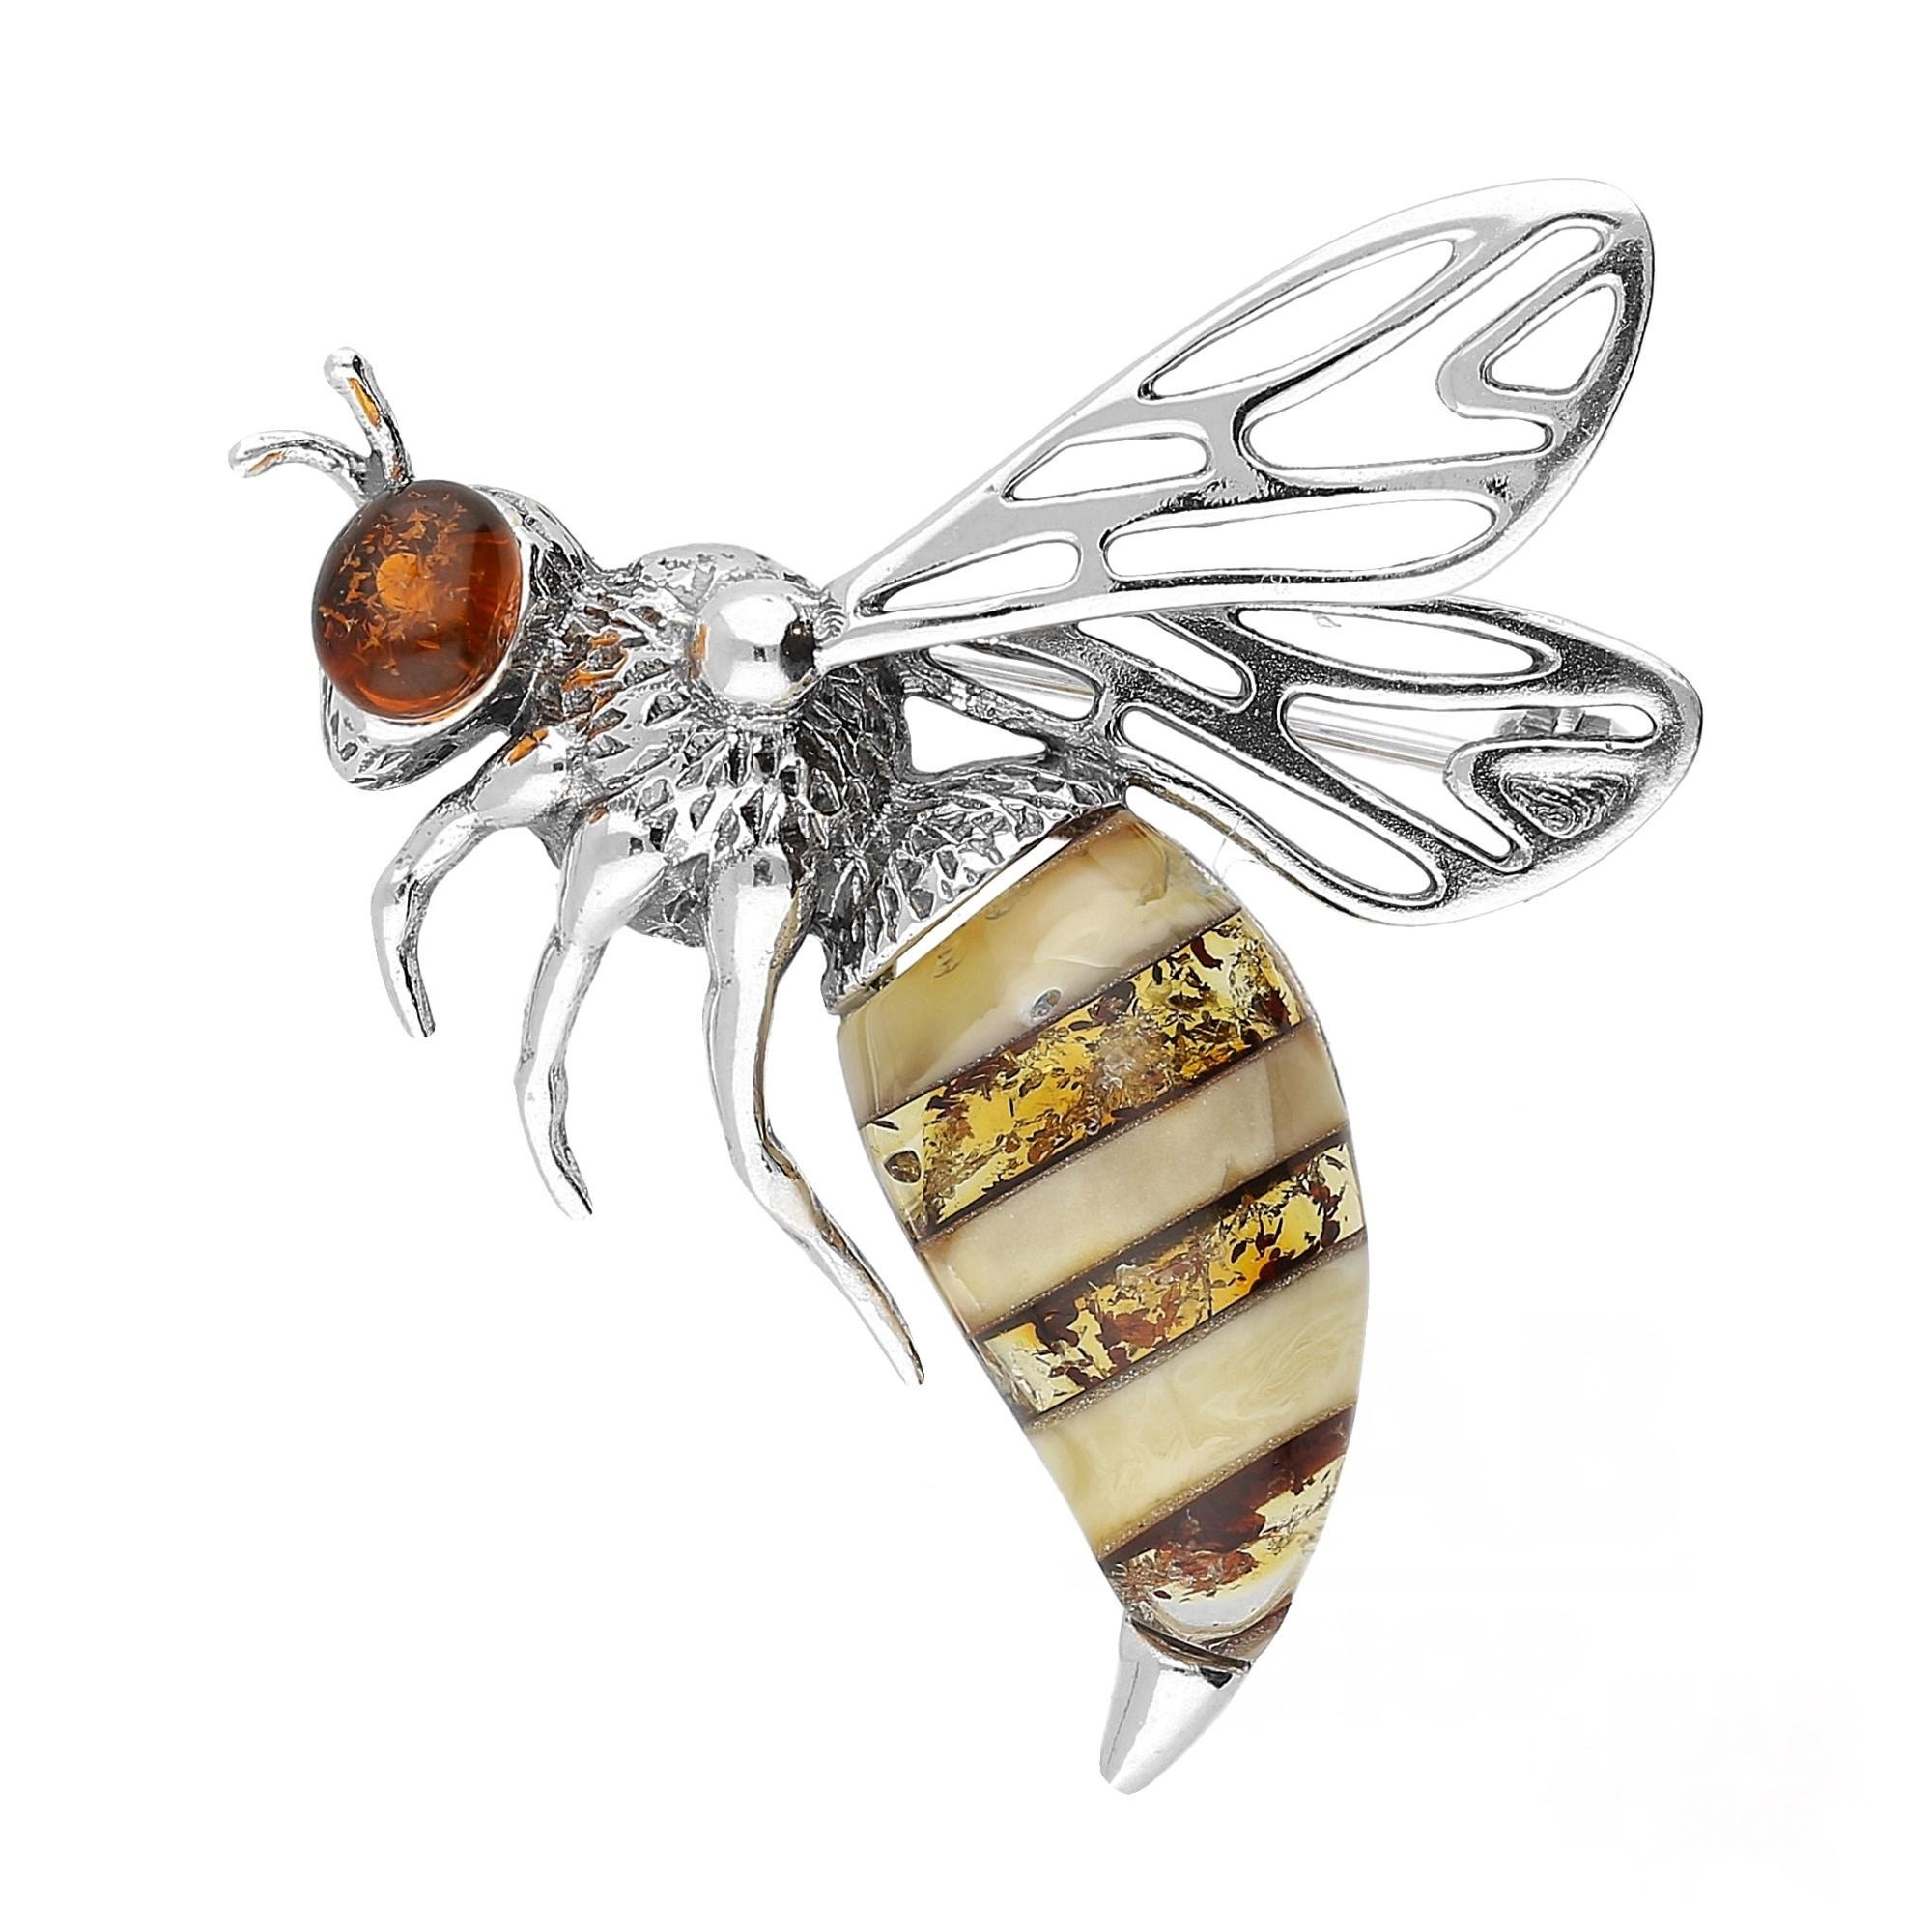 BALTIC AMBER STERLING SILVER 925 JEWELRY BEE BROOCH/PIN, KAB-166